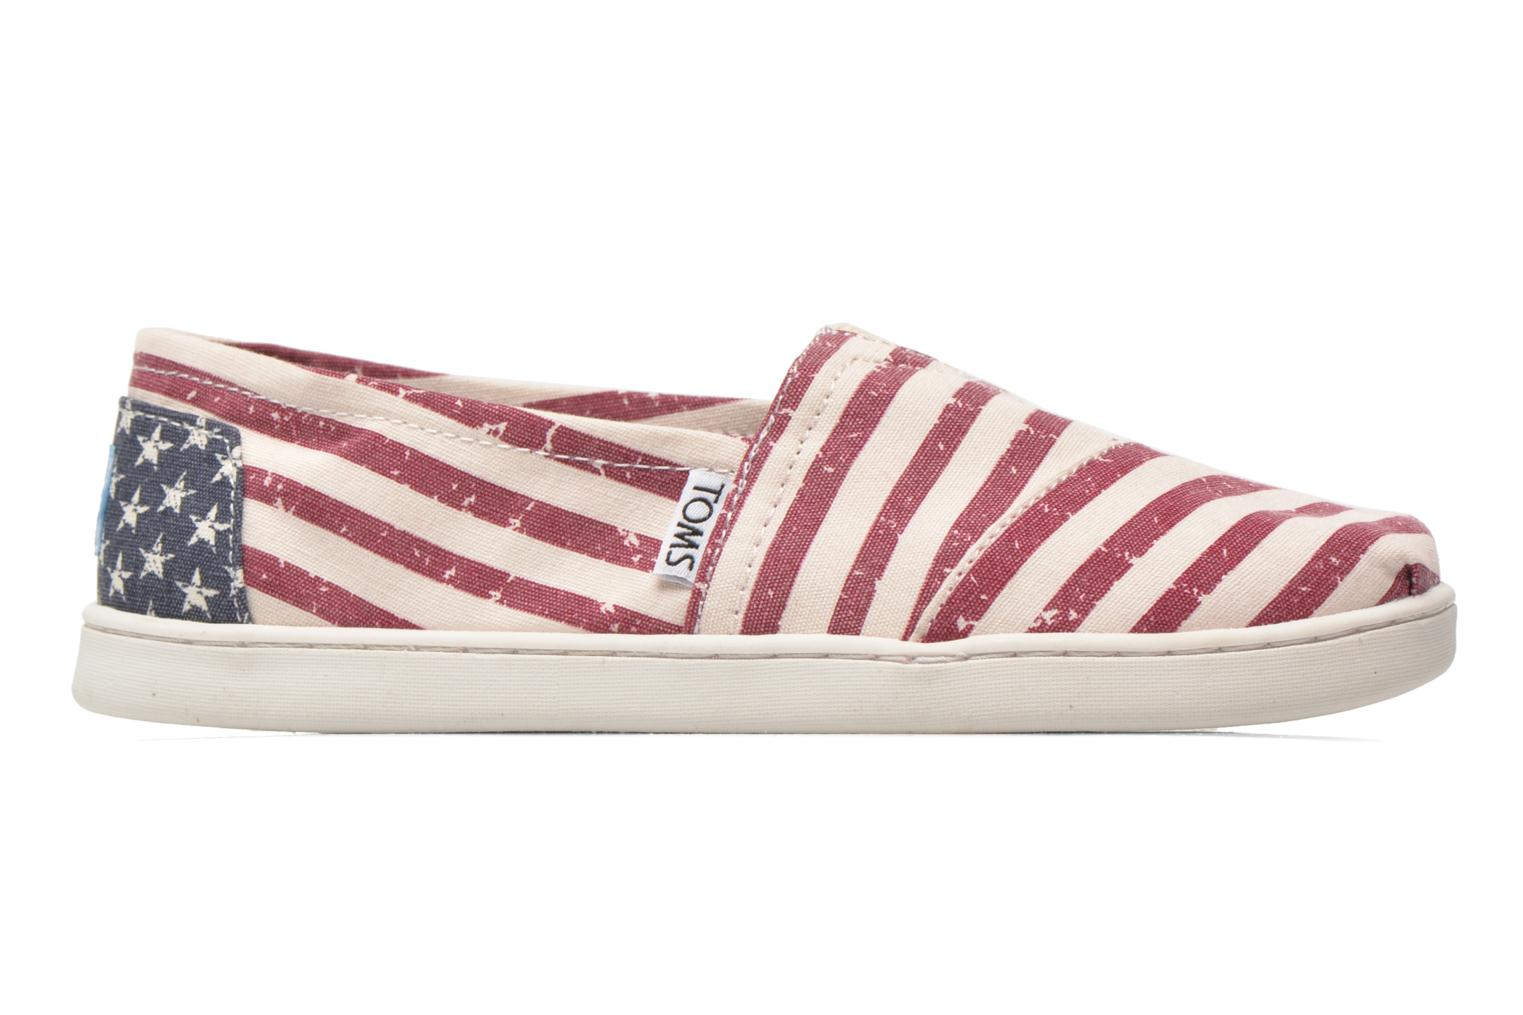 Baskets TOMS Seasonal Classics Multicolore vue derrière